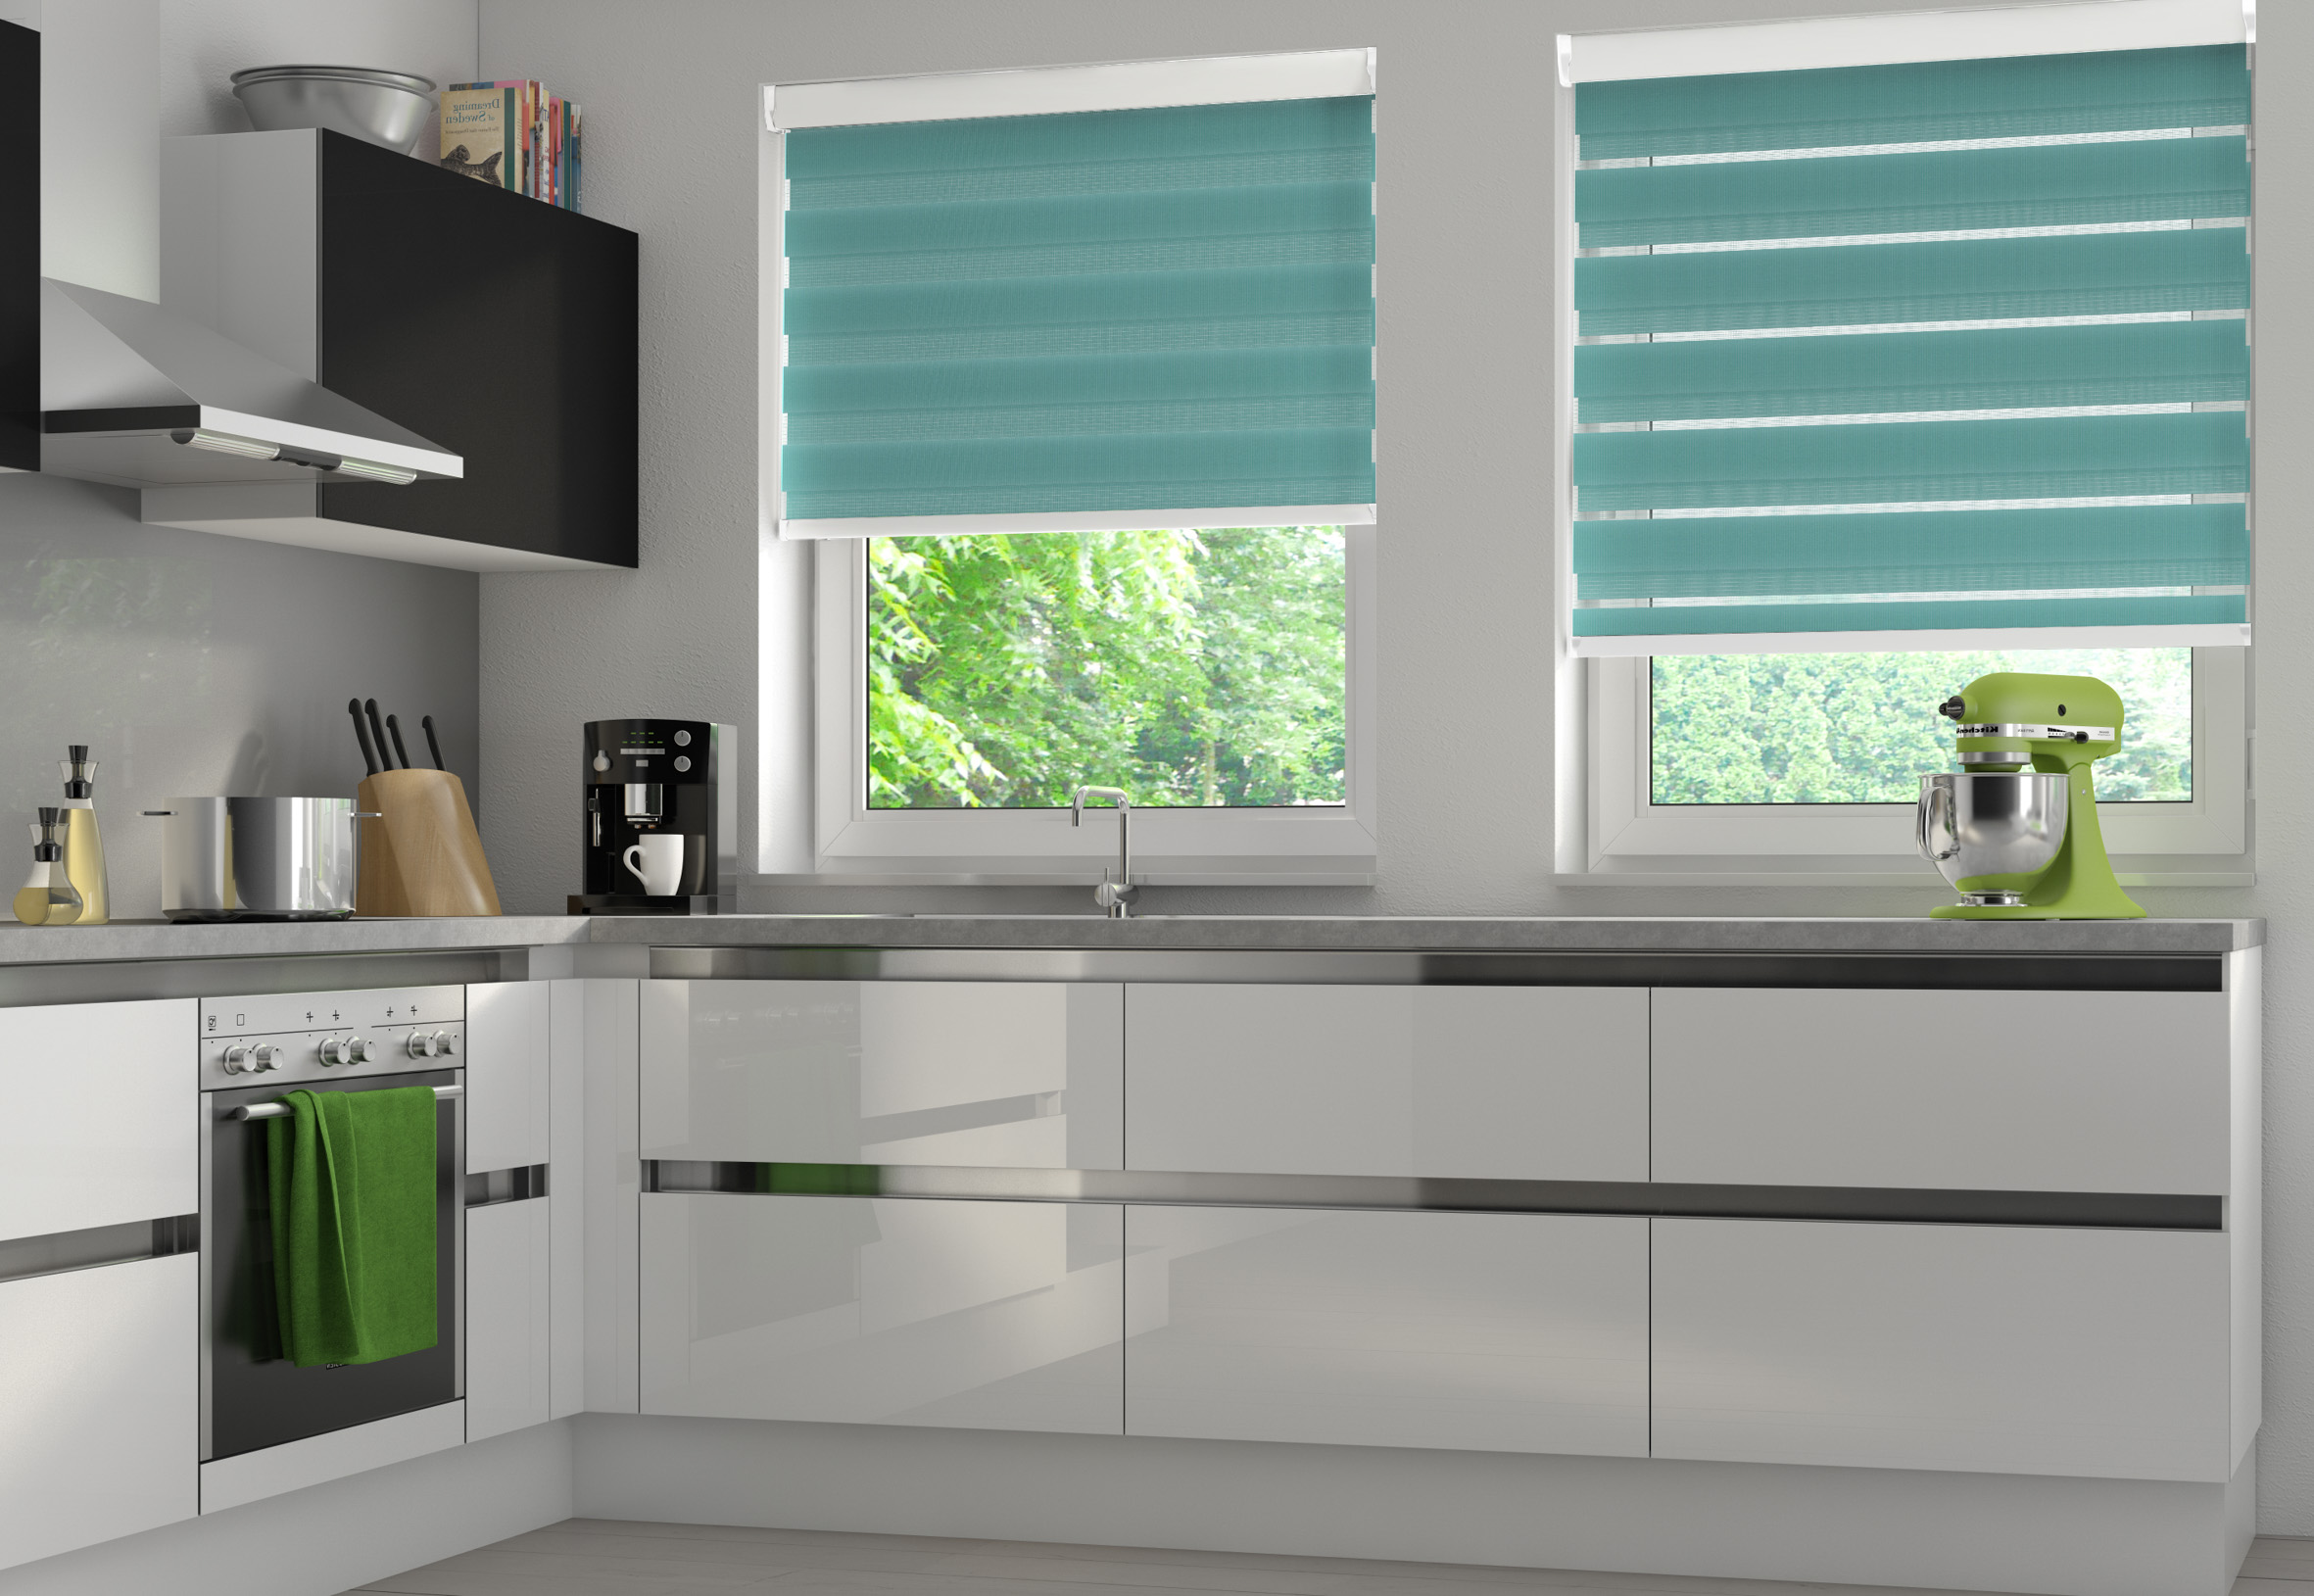 Duo Fabric Roller Blinds